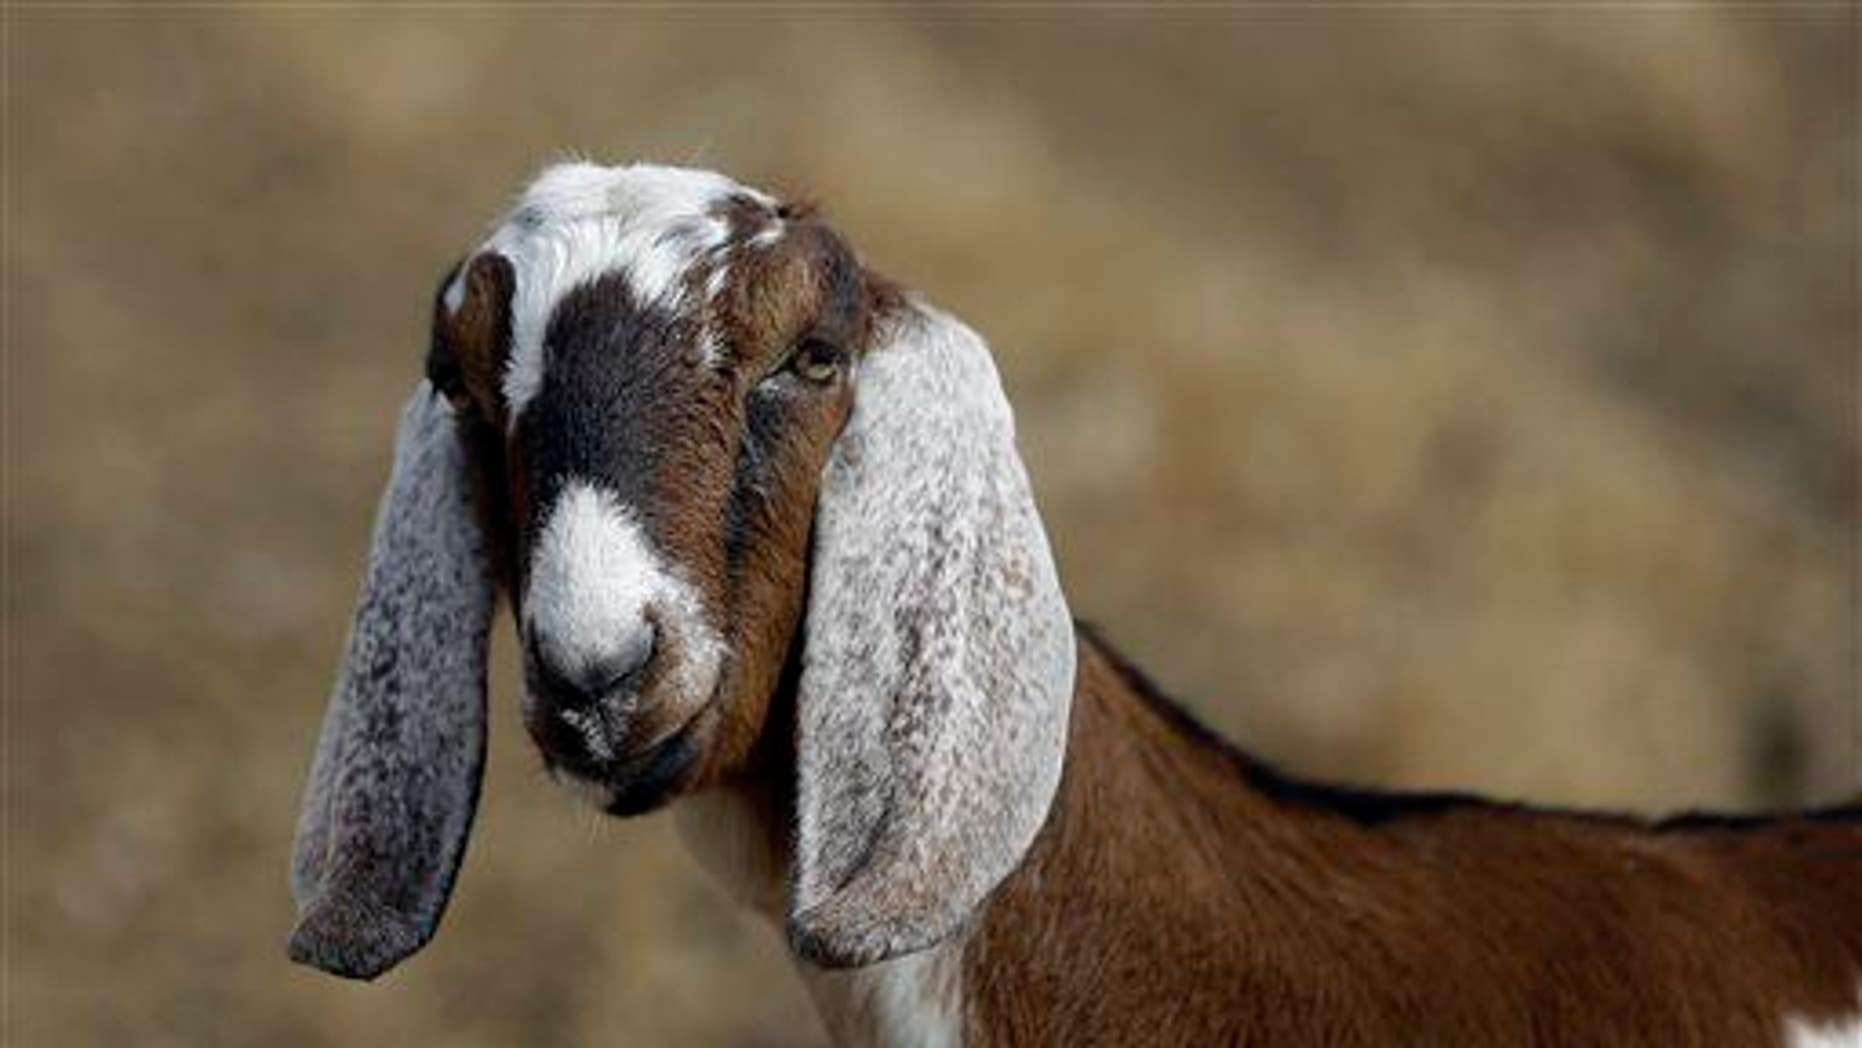 A dairy goat is seen at Buffalo Creek Farm and Creamery in Germanton, NC.